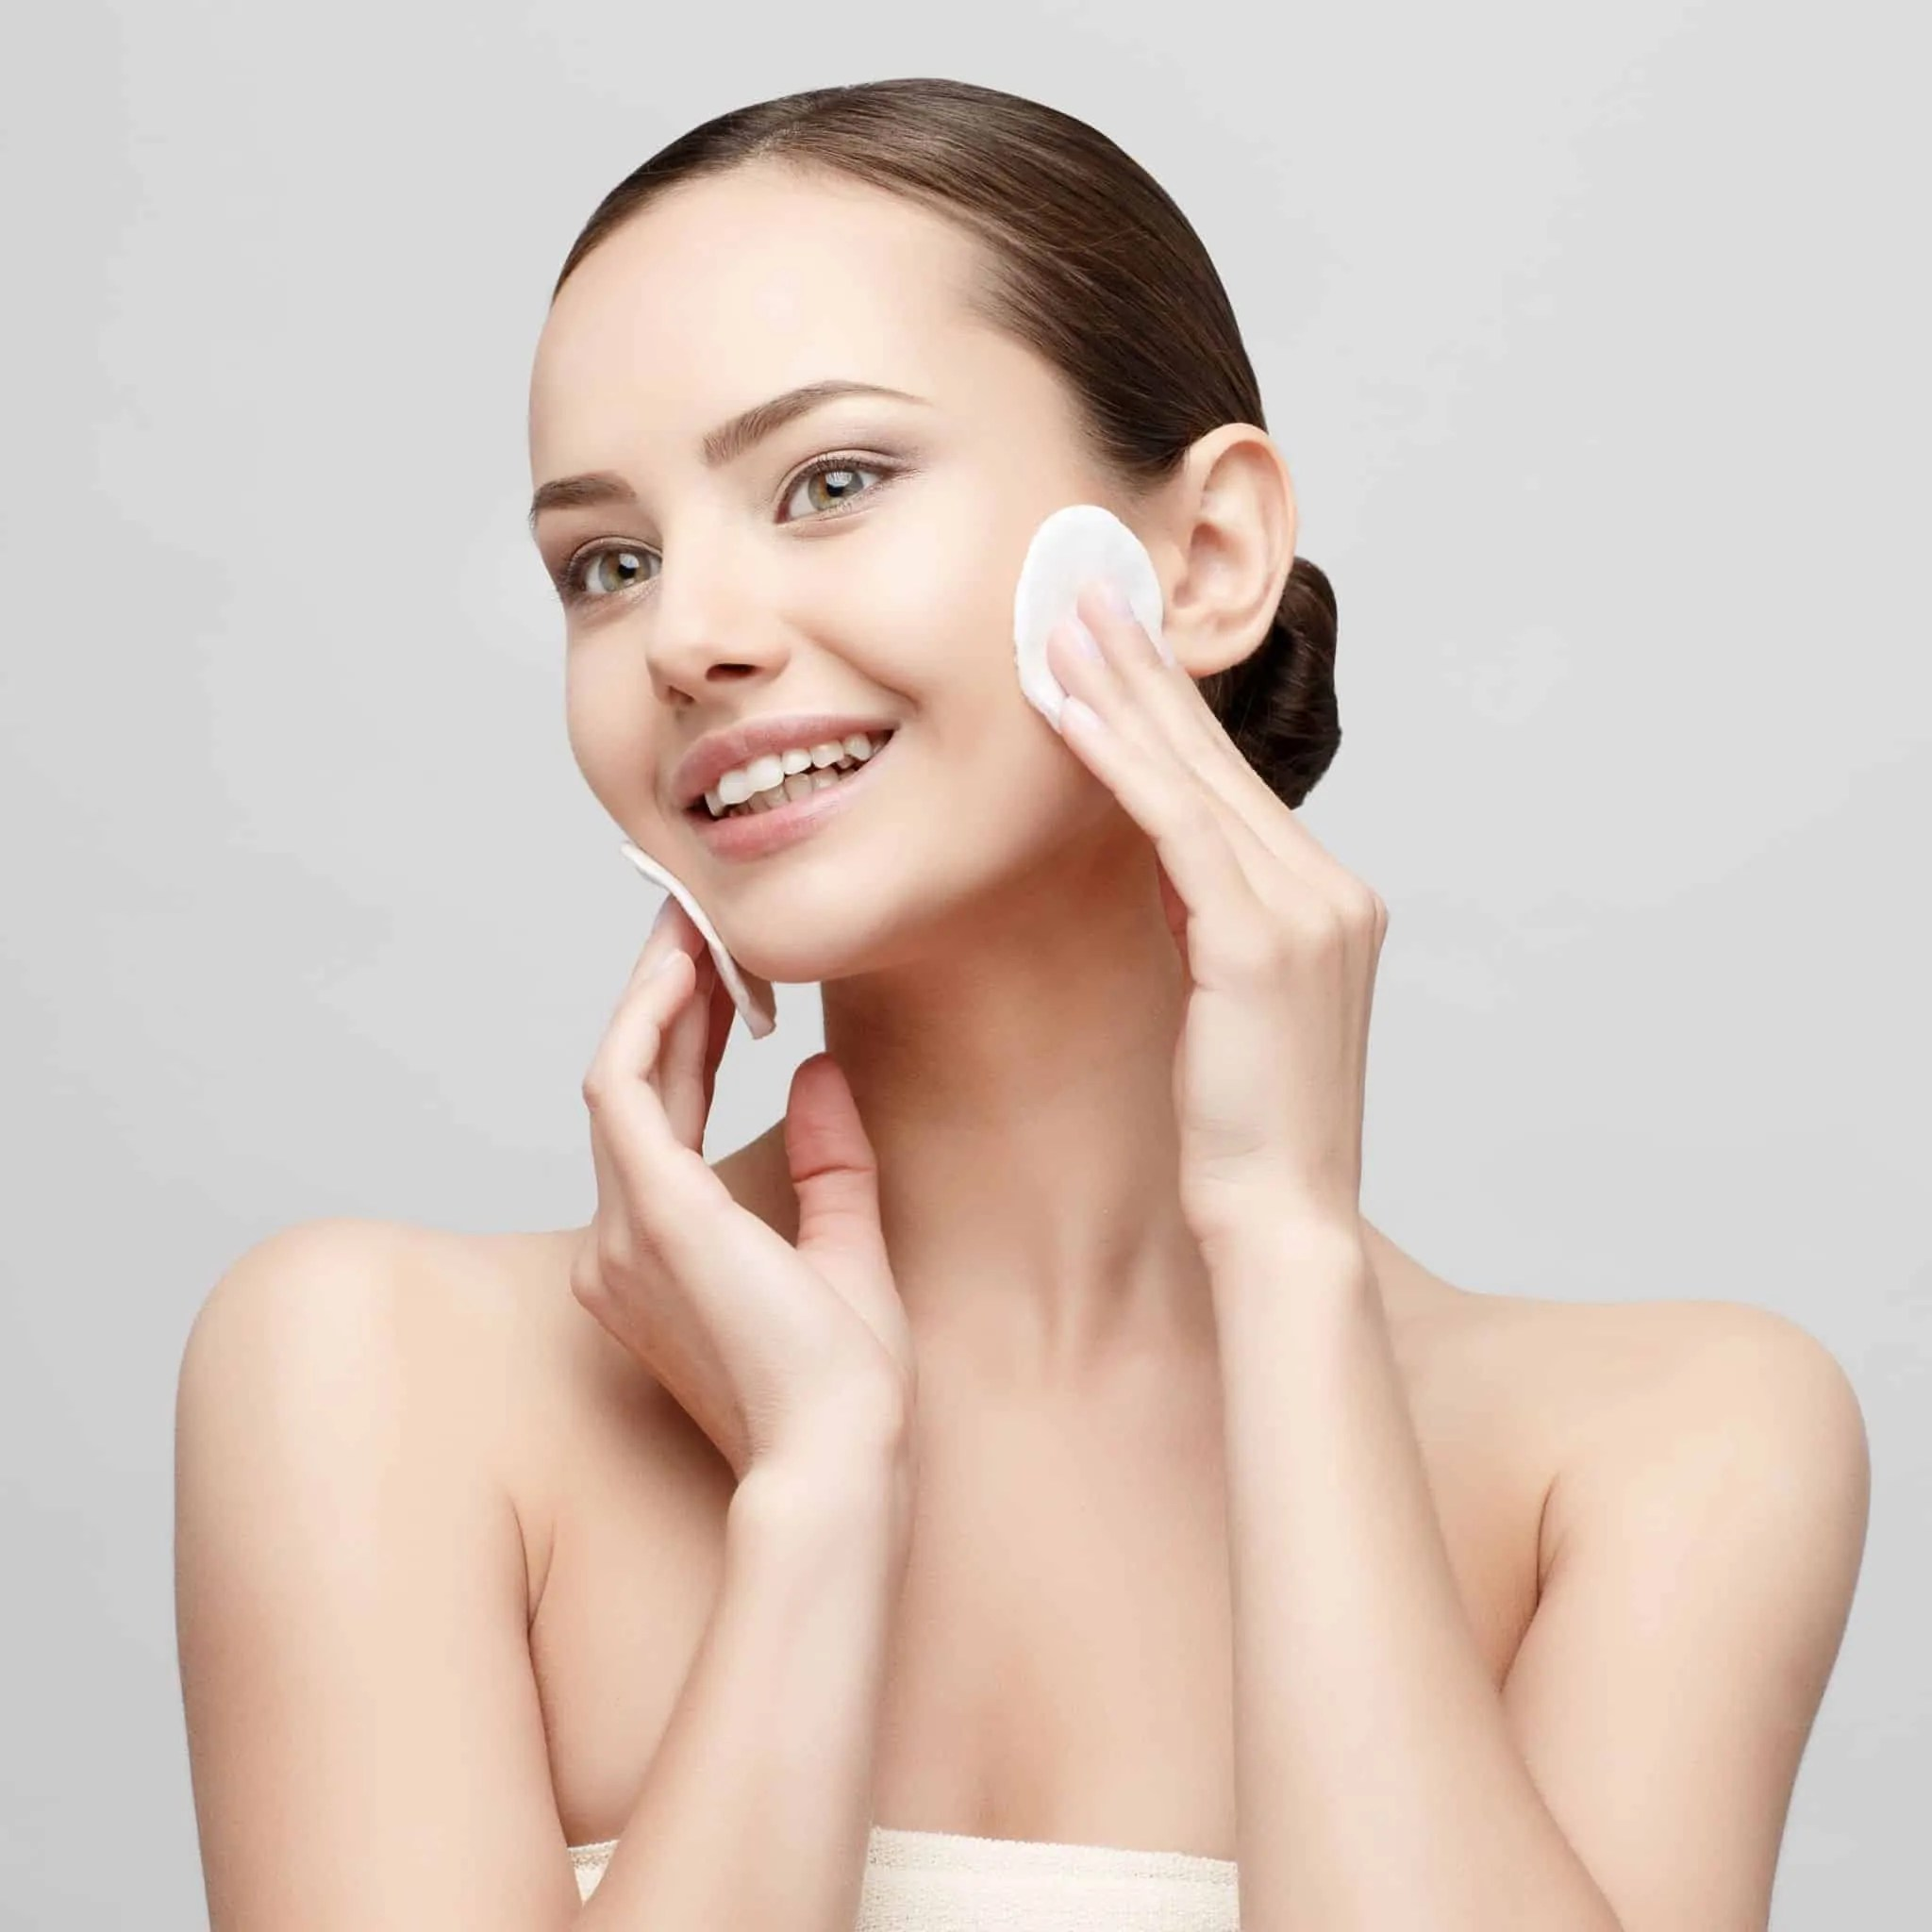 The best skin care products for oily skin